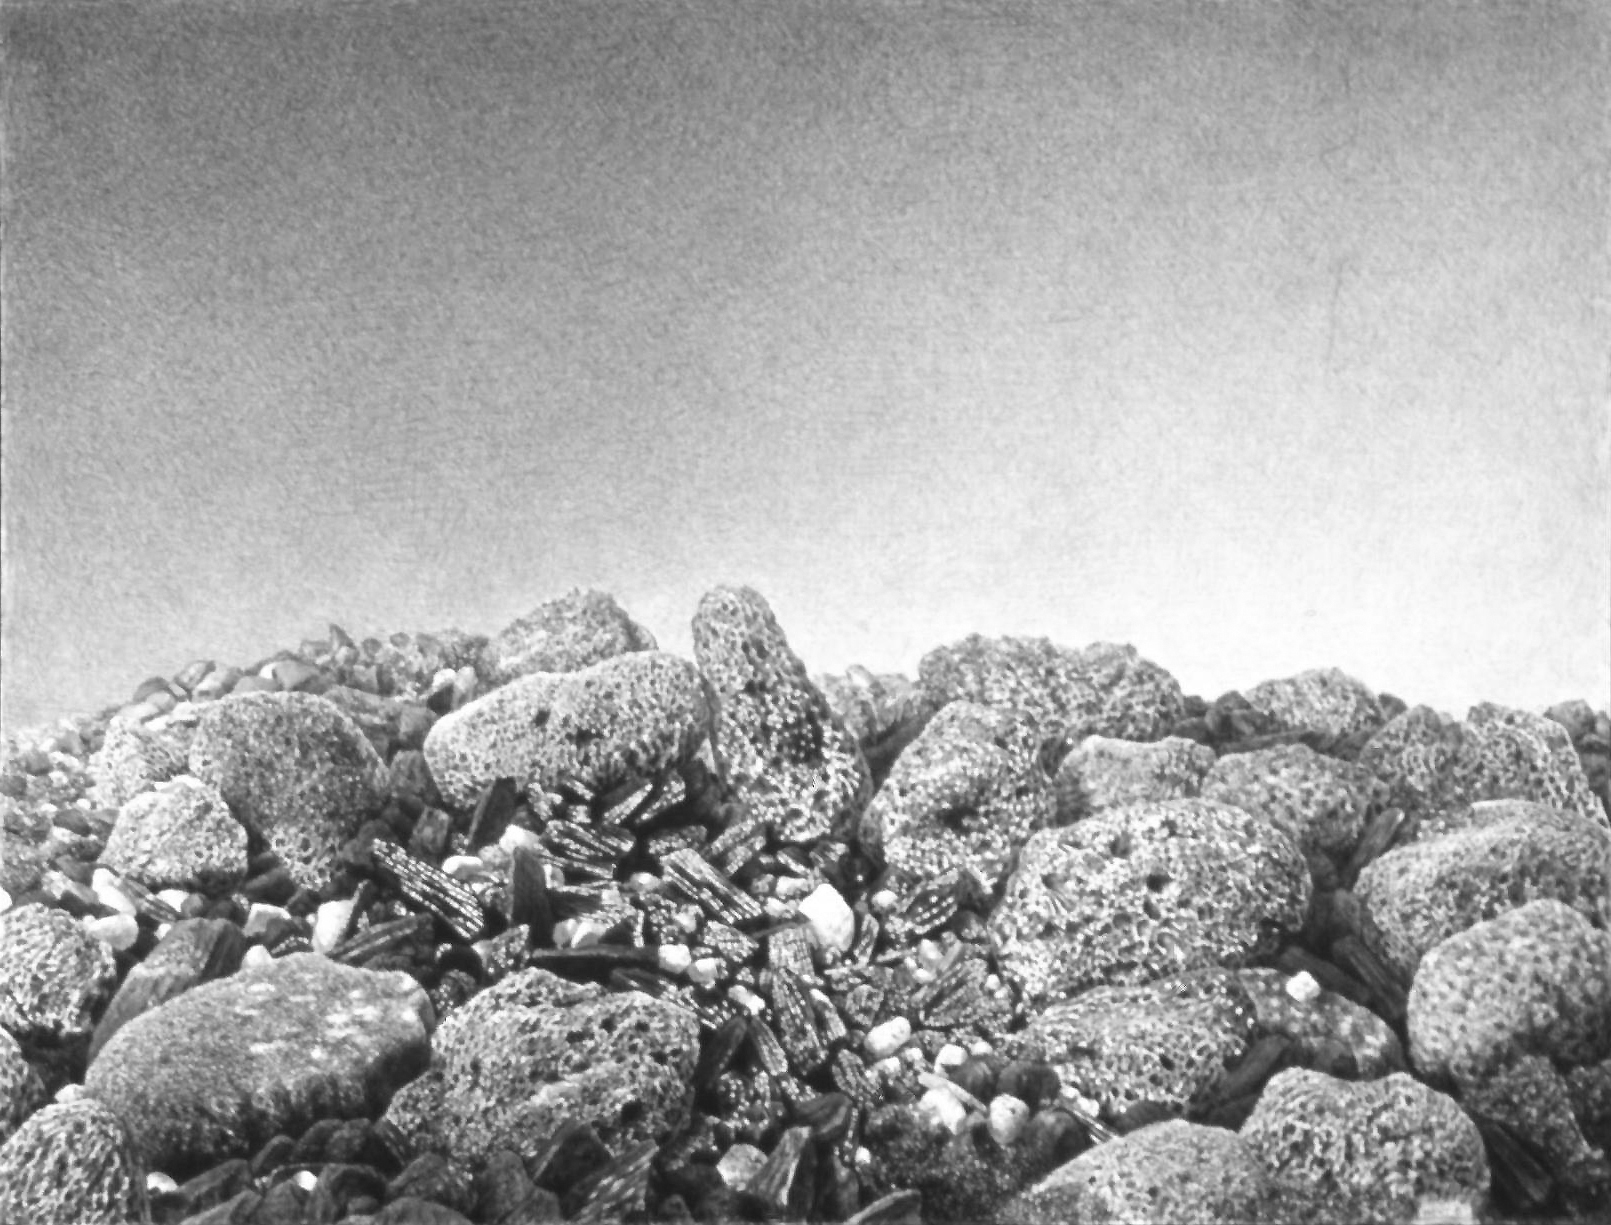 <b>ERIC WERT</b><i><br>Untitled</i><br>graphite on paper<br> 14 x 20 inches (24 x 10 inches framed)<br></br>